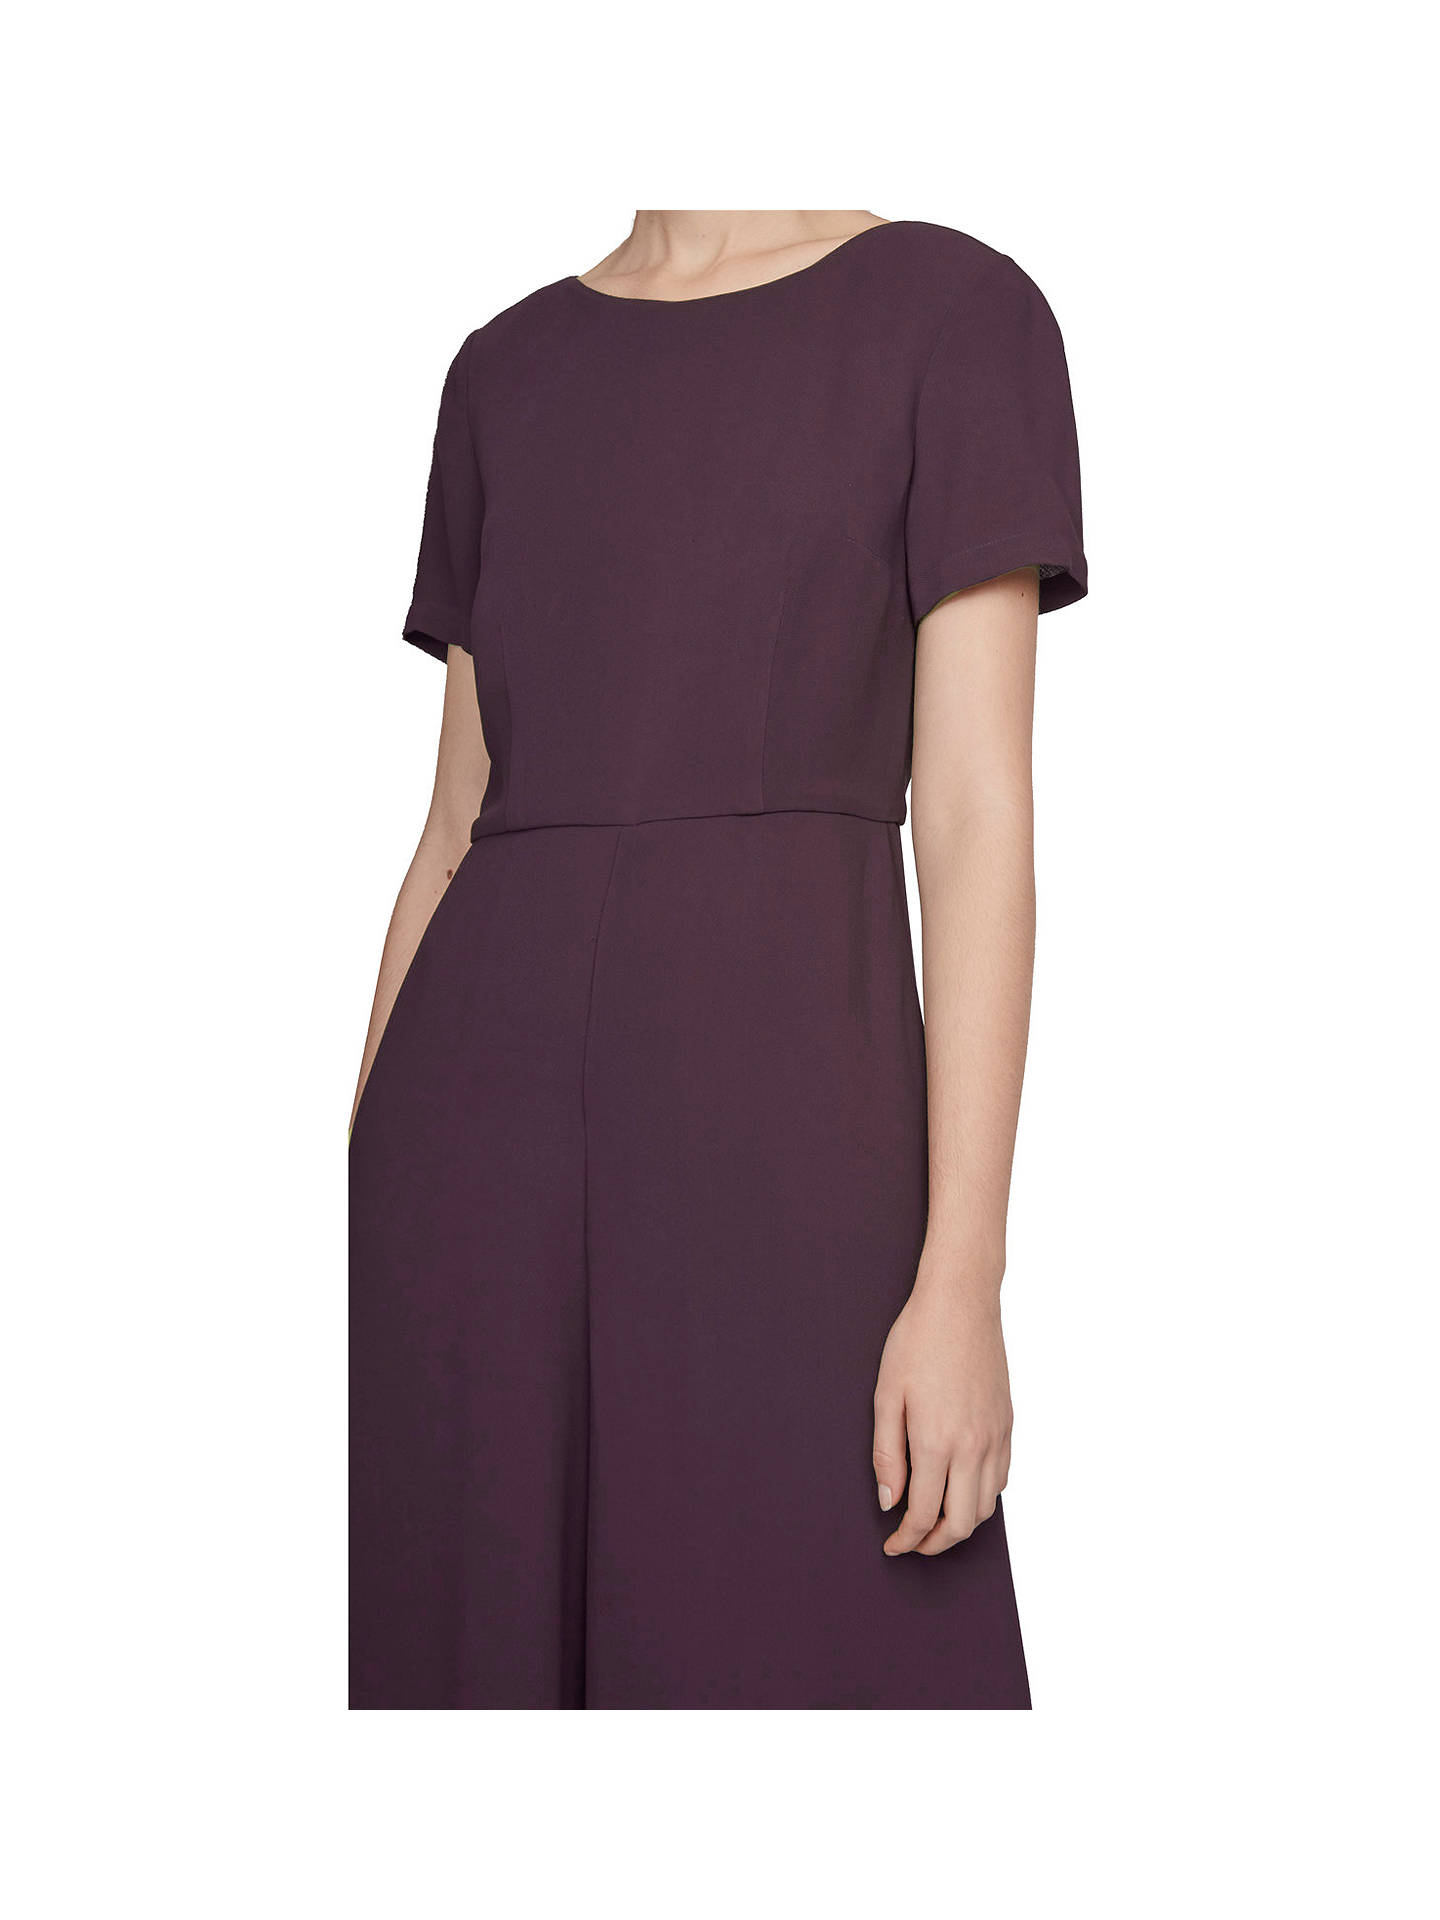 01fc33dc733 ... Buy French Connection Esther Crepe Short Sleeve Jumpsuit, Deepest  Purple, 6 Online at johnlewis